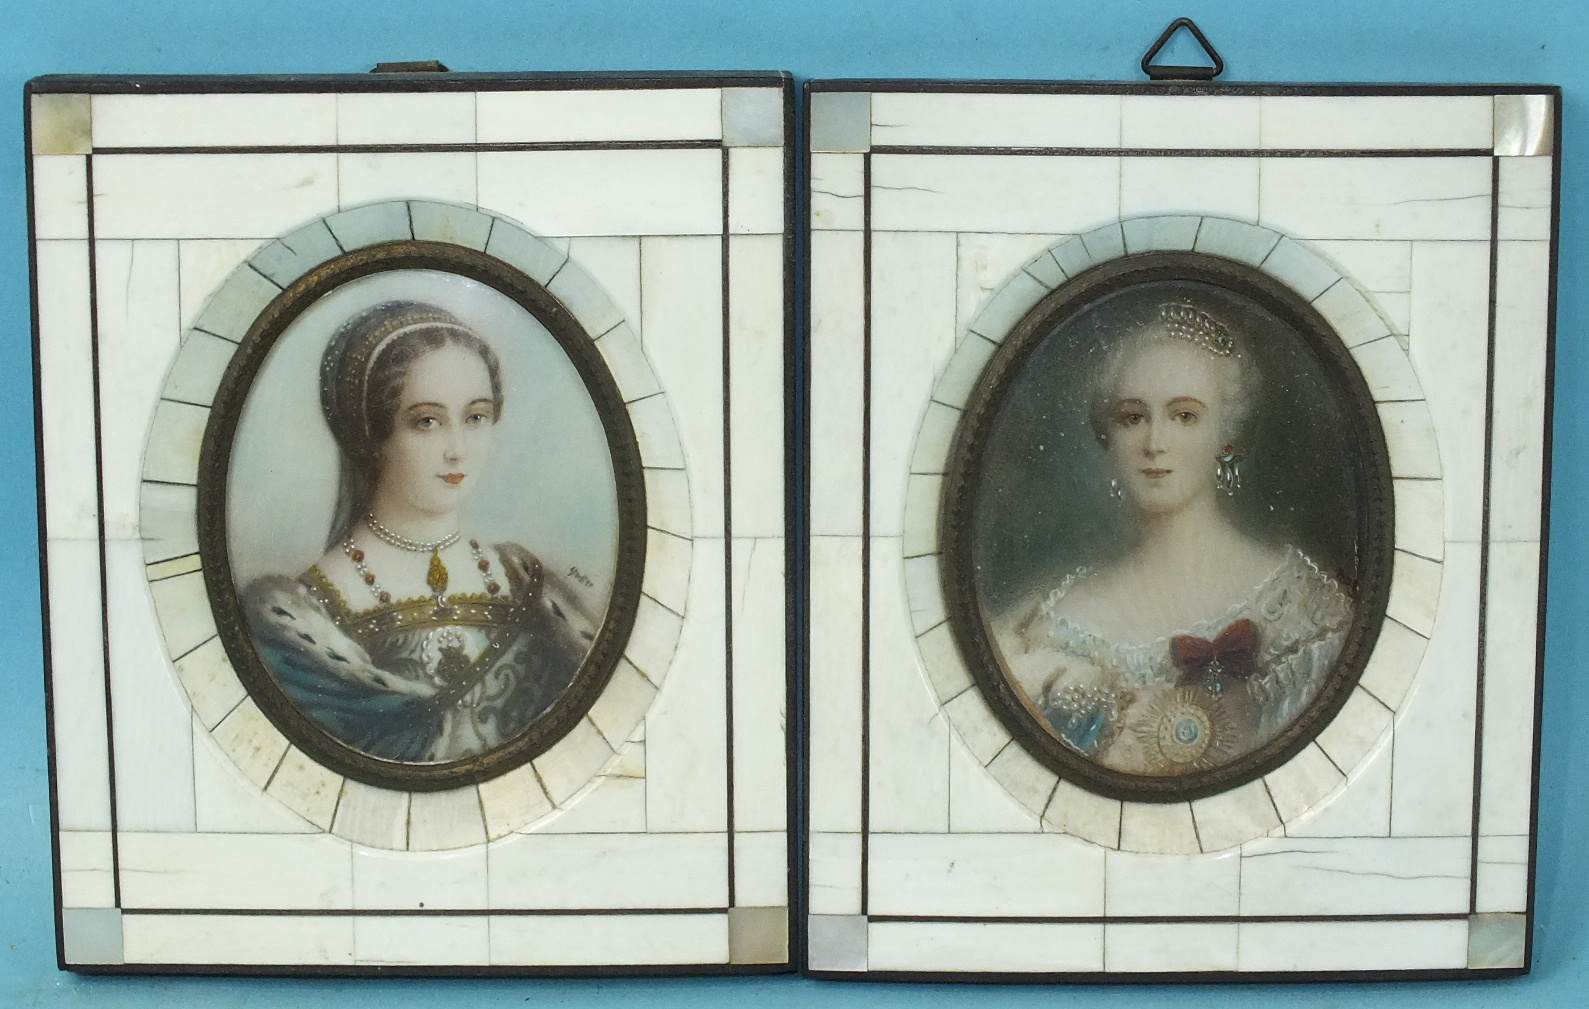 Lot 82 - A pair of early-20th century portrait miniatures of noble women adorned with jewellery, 8.5 x